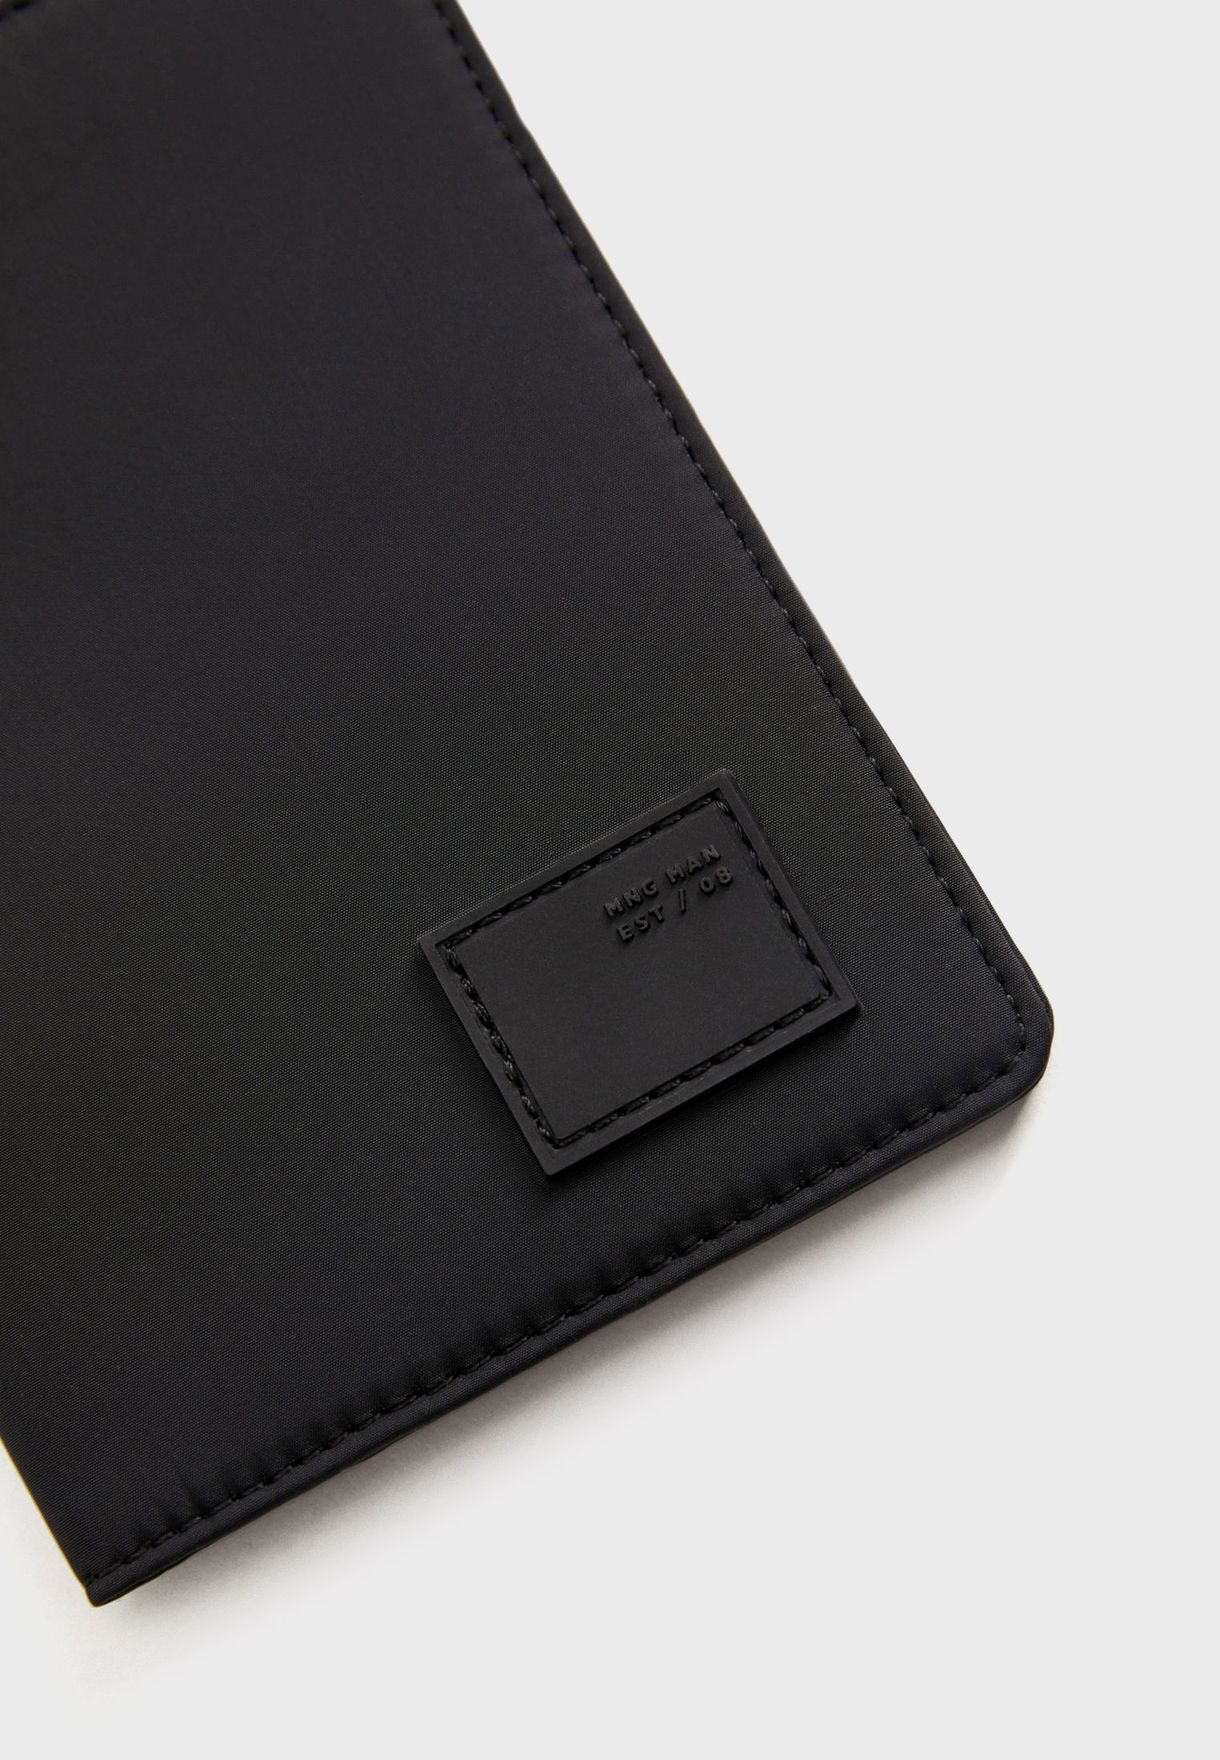 Passport Multislot Card Holder